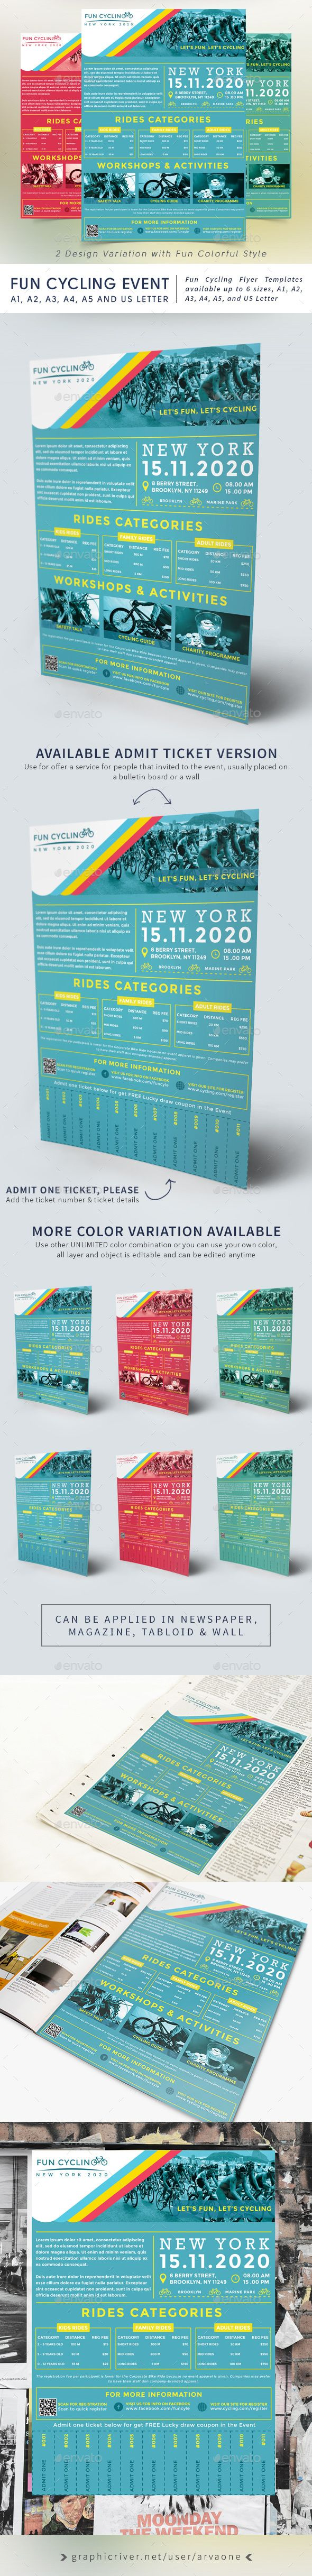 Fun Cycling Event Flyer Templates by arvaone Fun Cycling Event Flyer TemplatesFun Cycling Event Flyer Templates is perfect for anyone who want to make an cycling event and pr